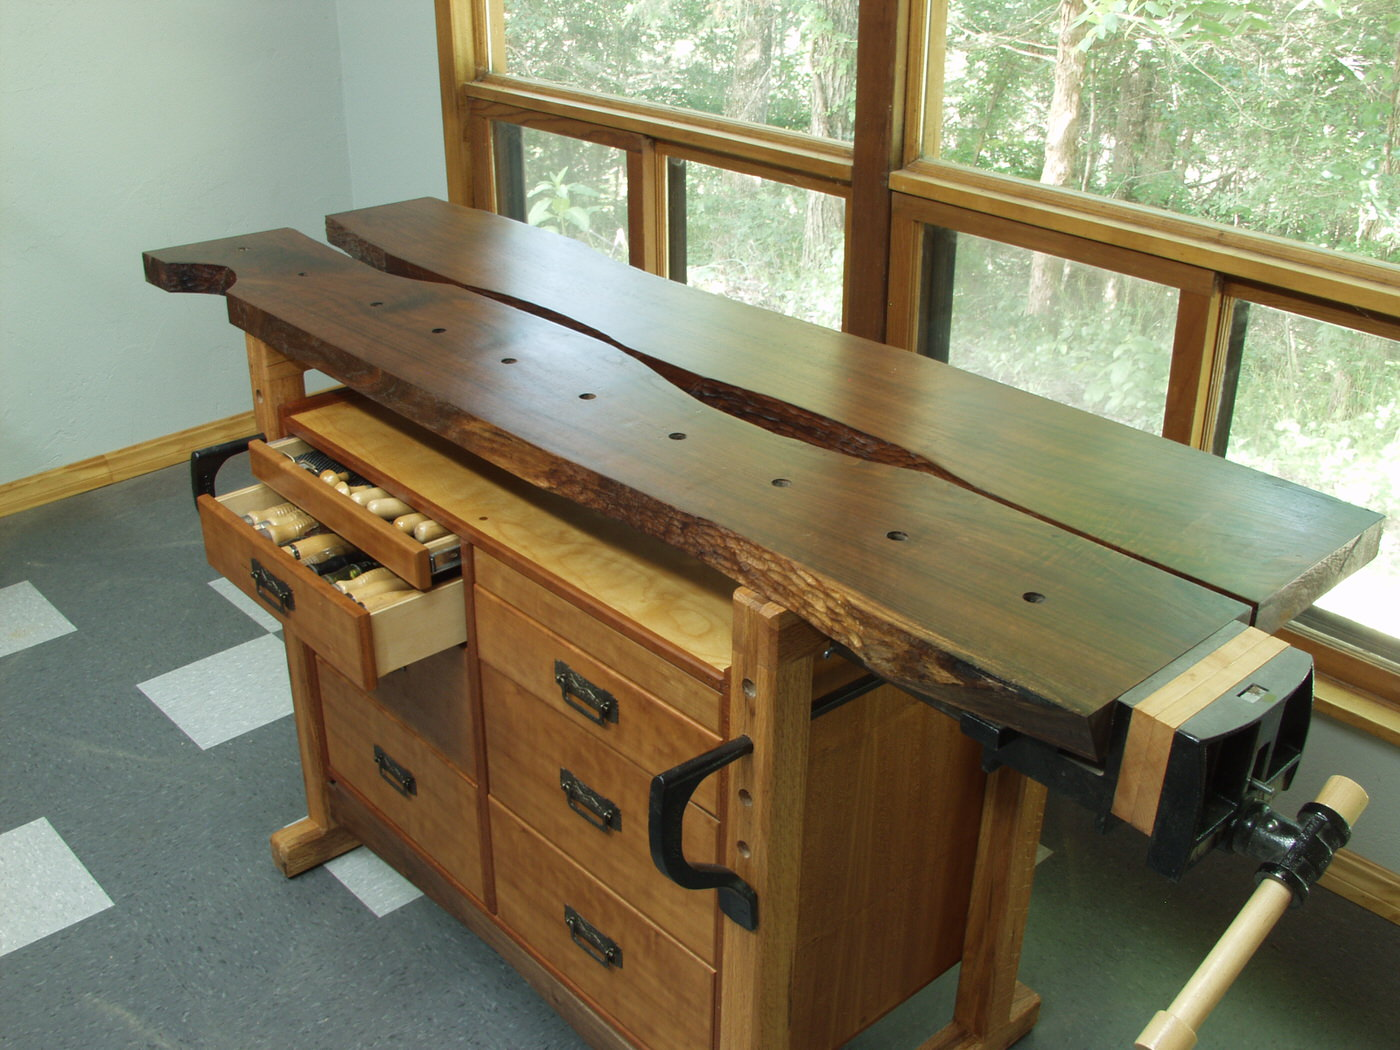 Doug's Walnut and Cherry work bench